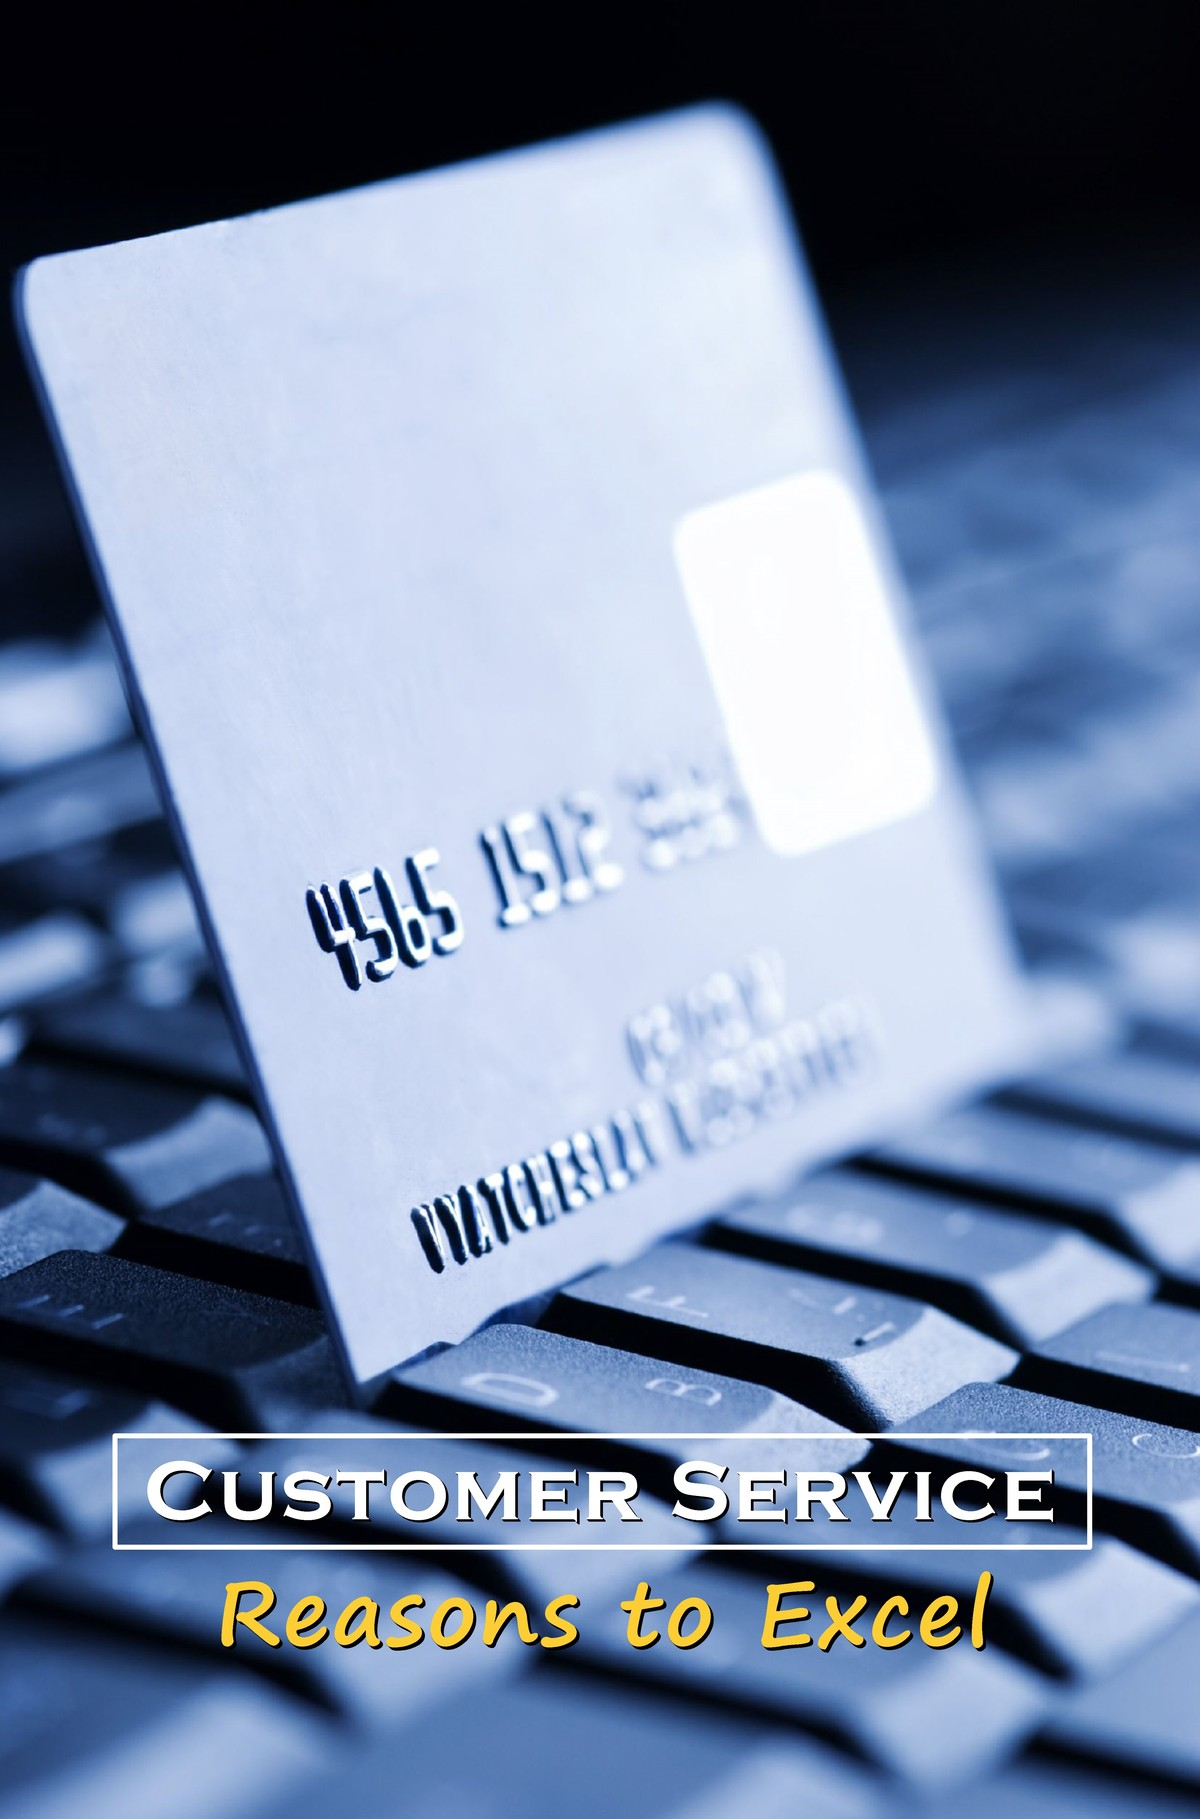 L7007 - Customer Service Reasons to Excel